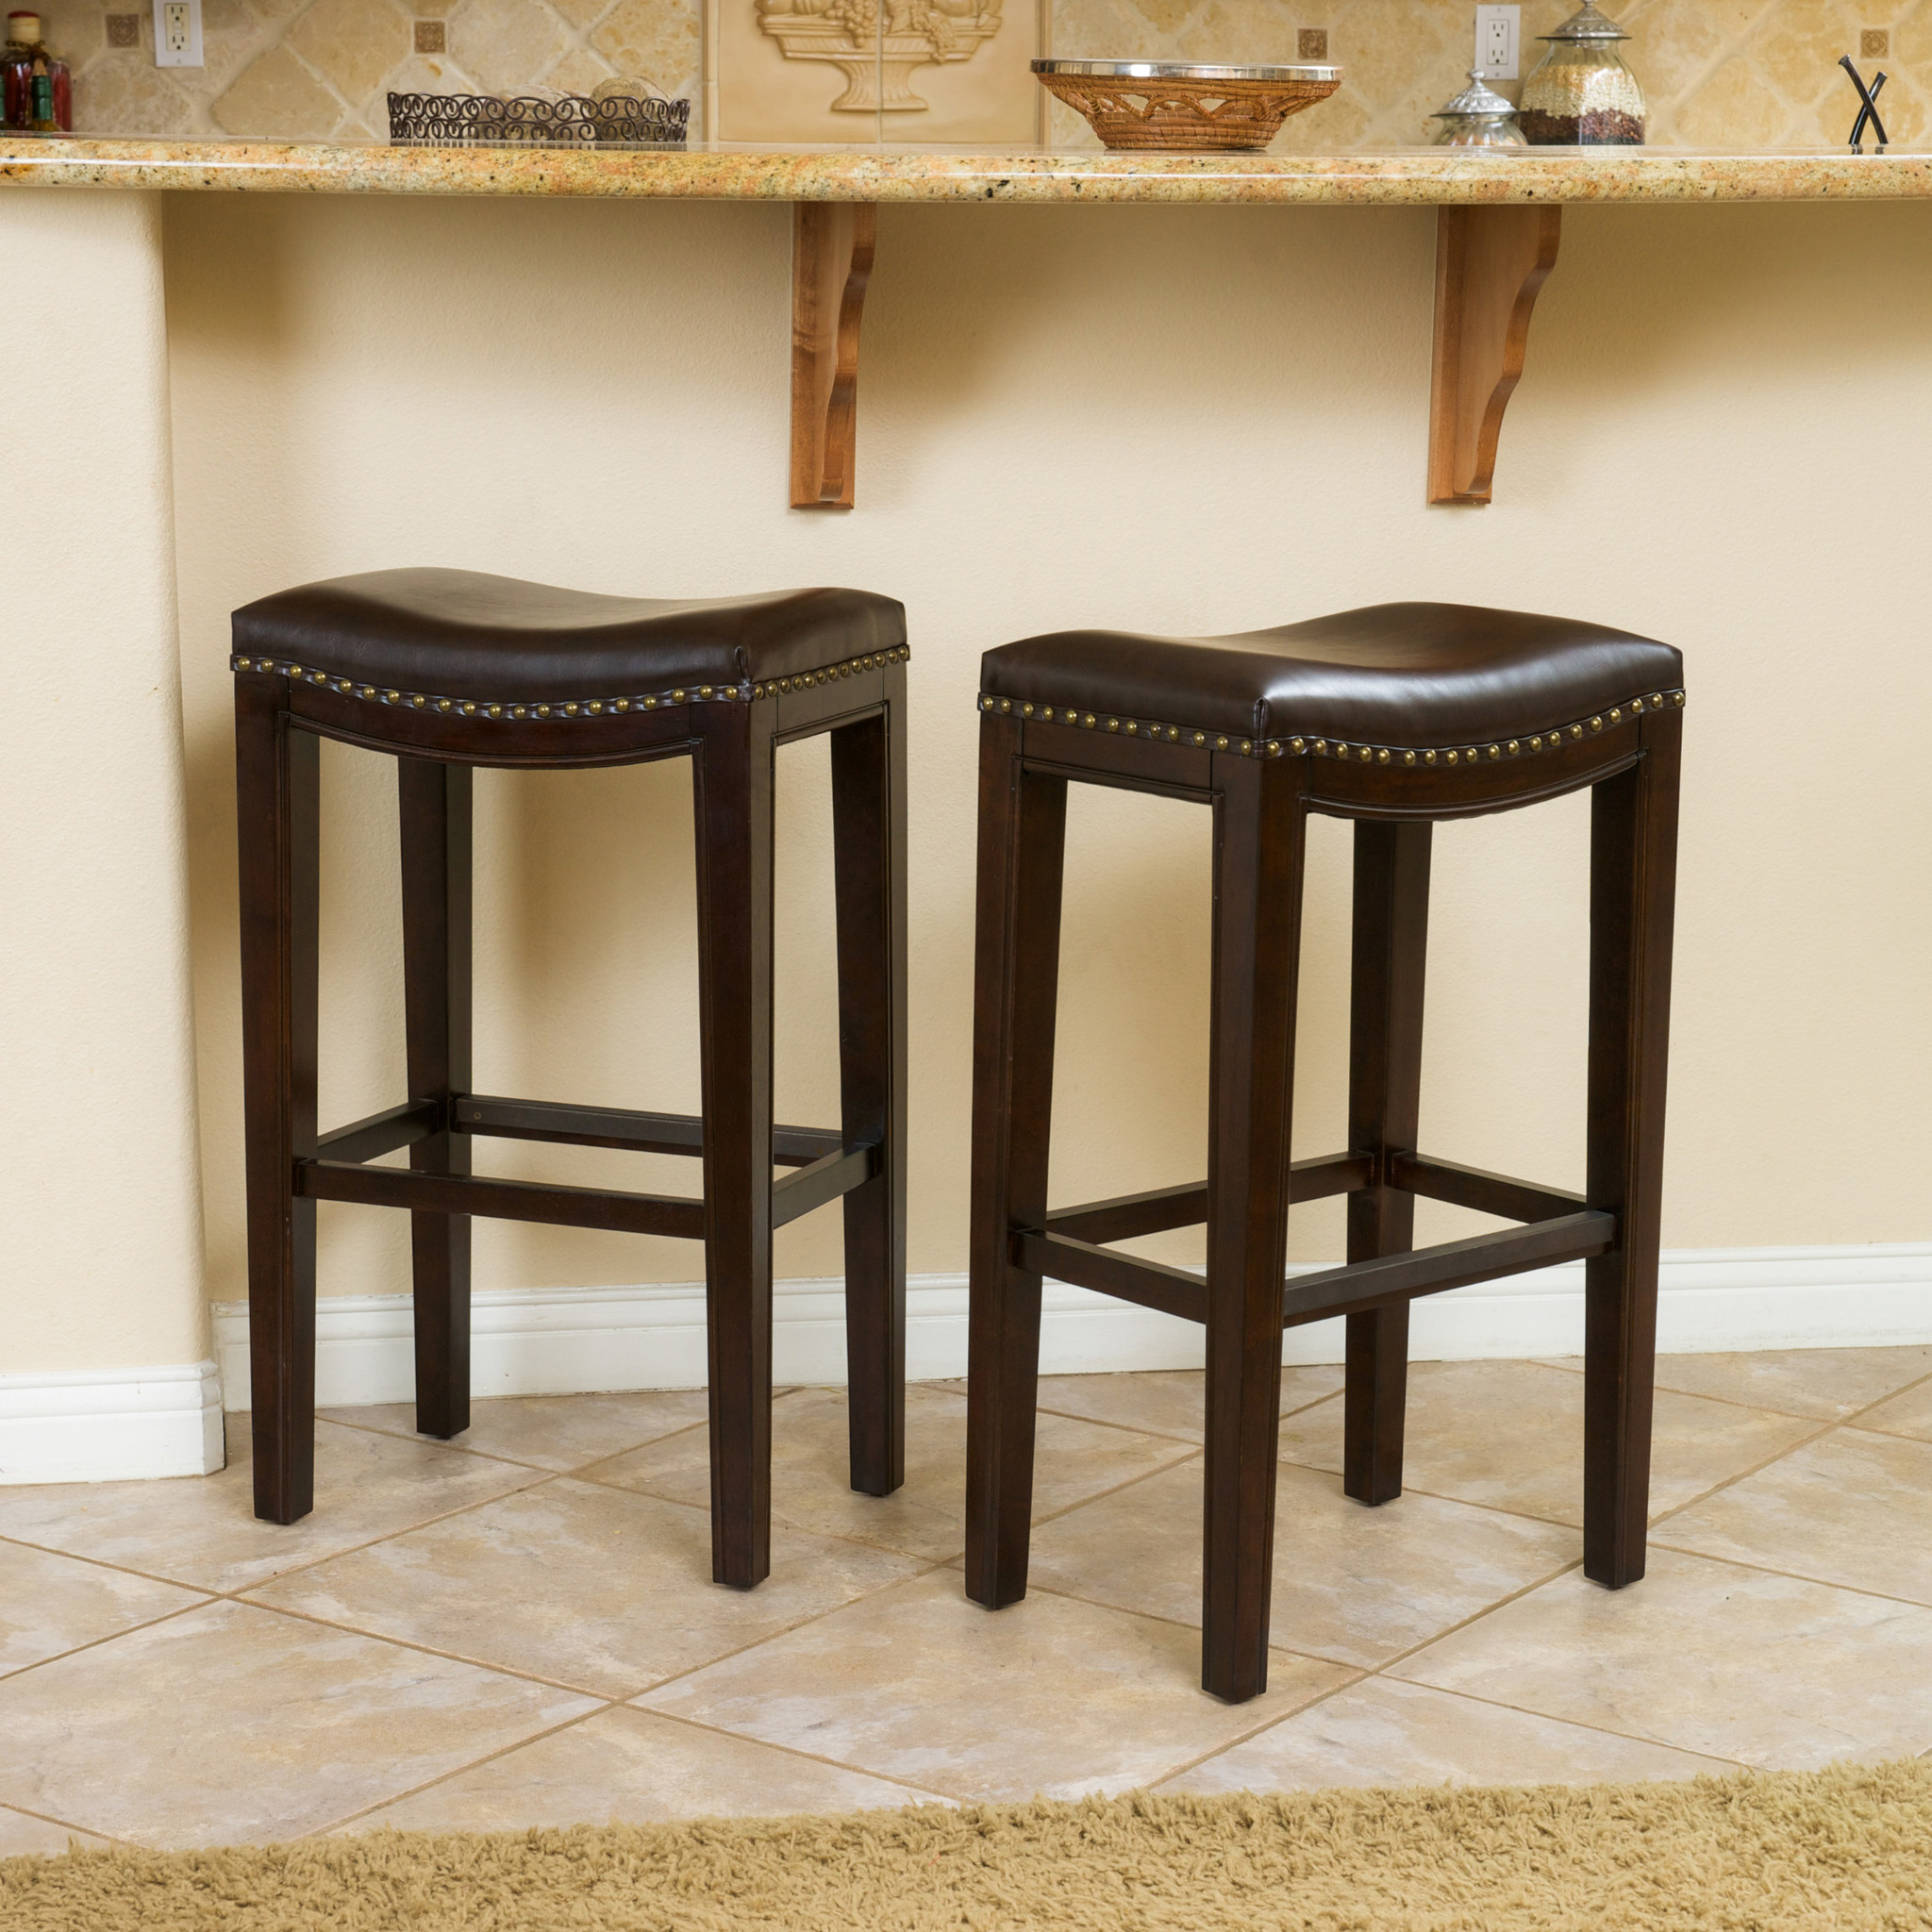 Magnificent leather bar stools for home furniture with leather swivel bar stools